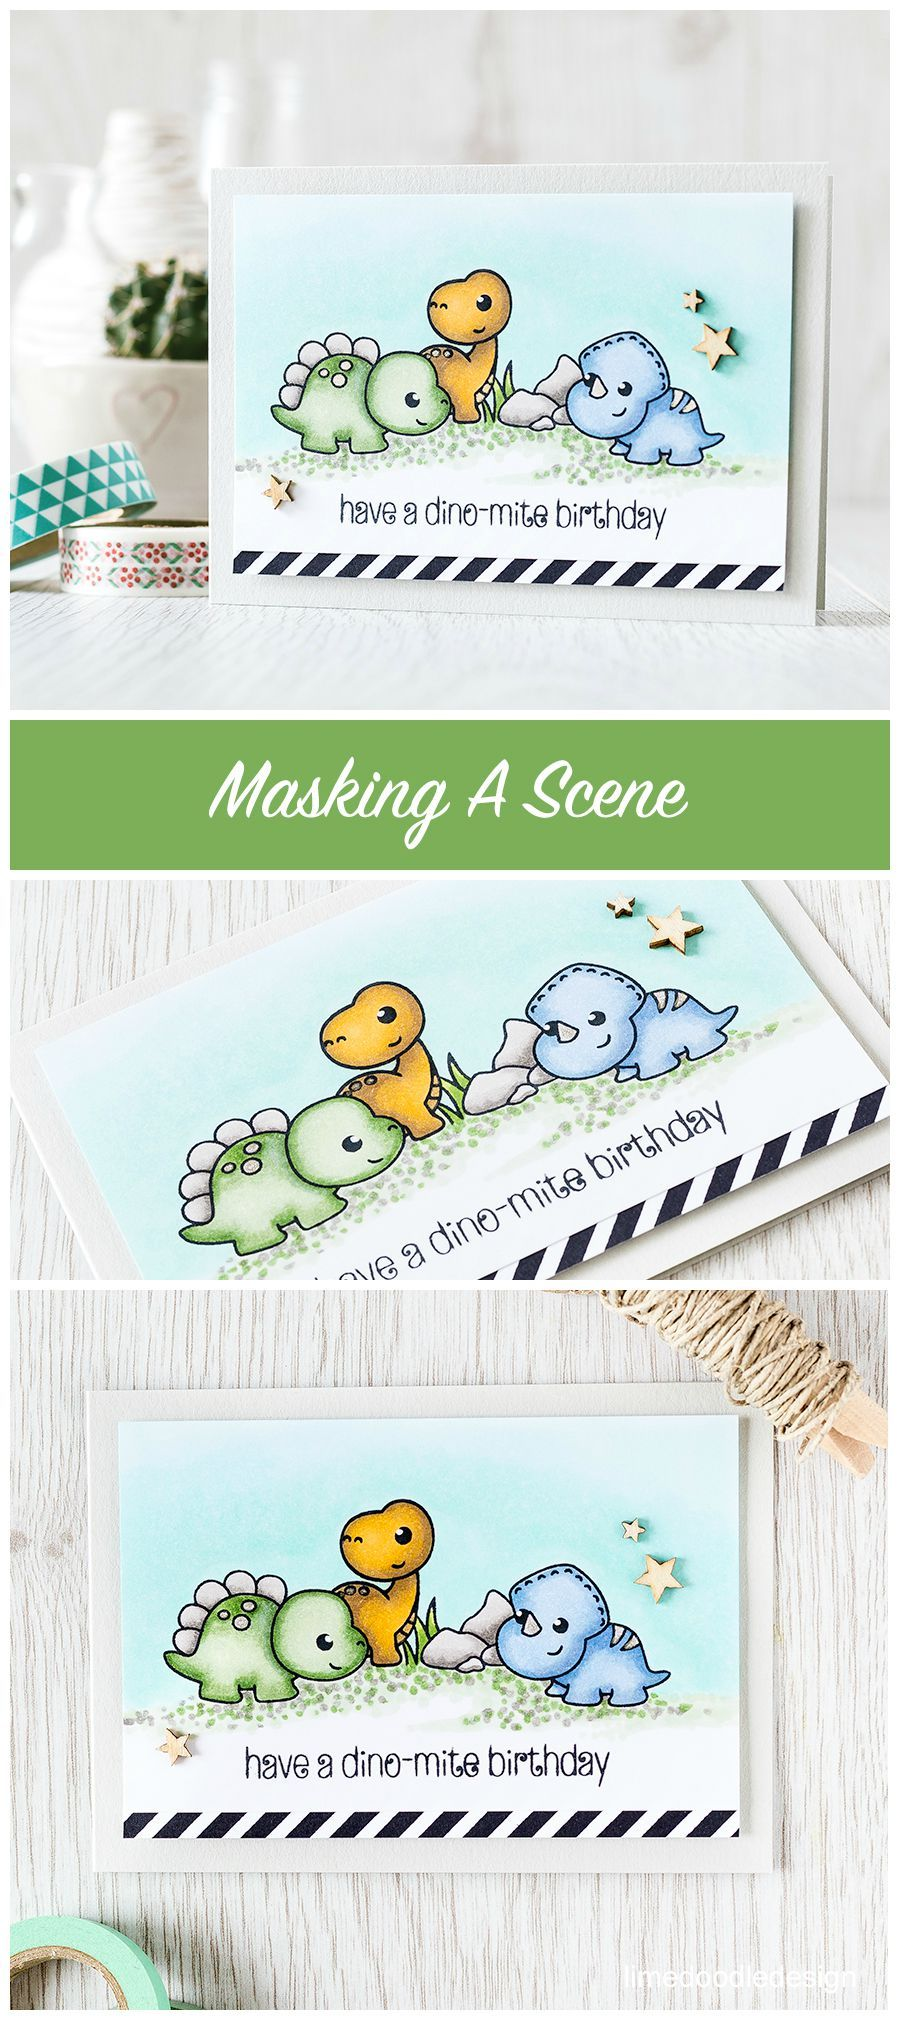 Masking a scene is easy when you have cute critters with simple outlines making creating the mask a cinch! Find out more by clicking the following link: http://limedoodledesign.com/2015/08/masking-a-scene/